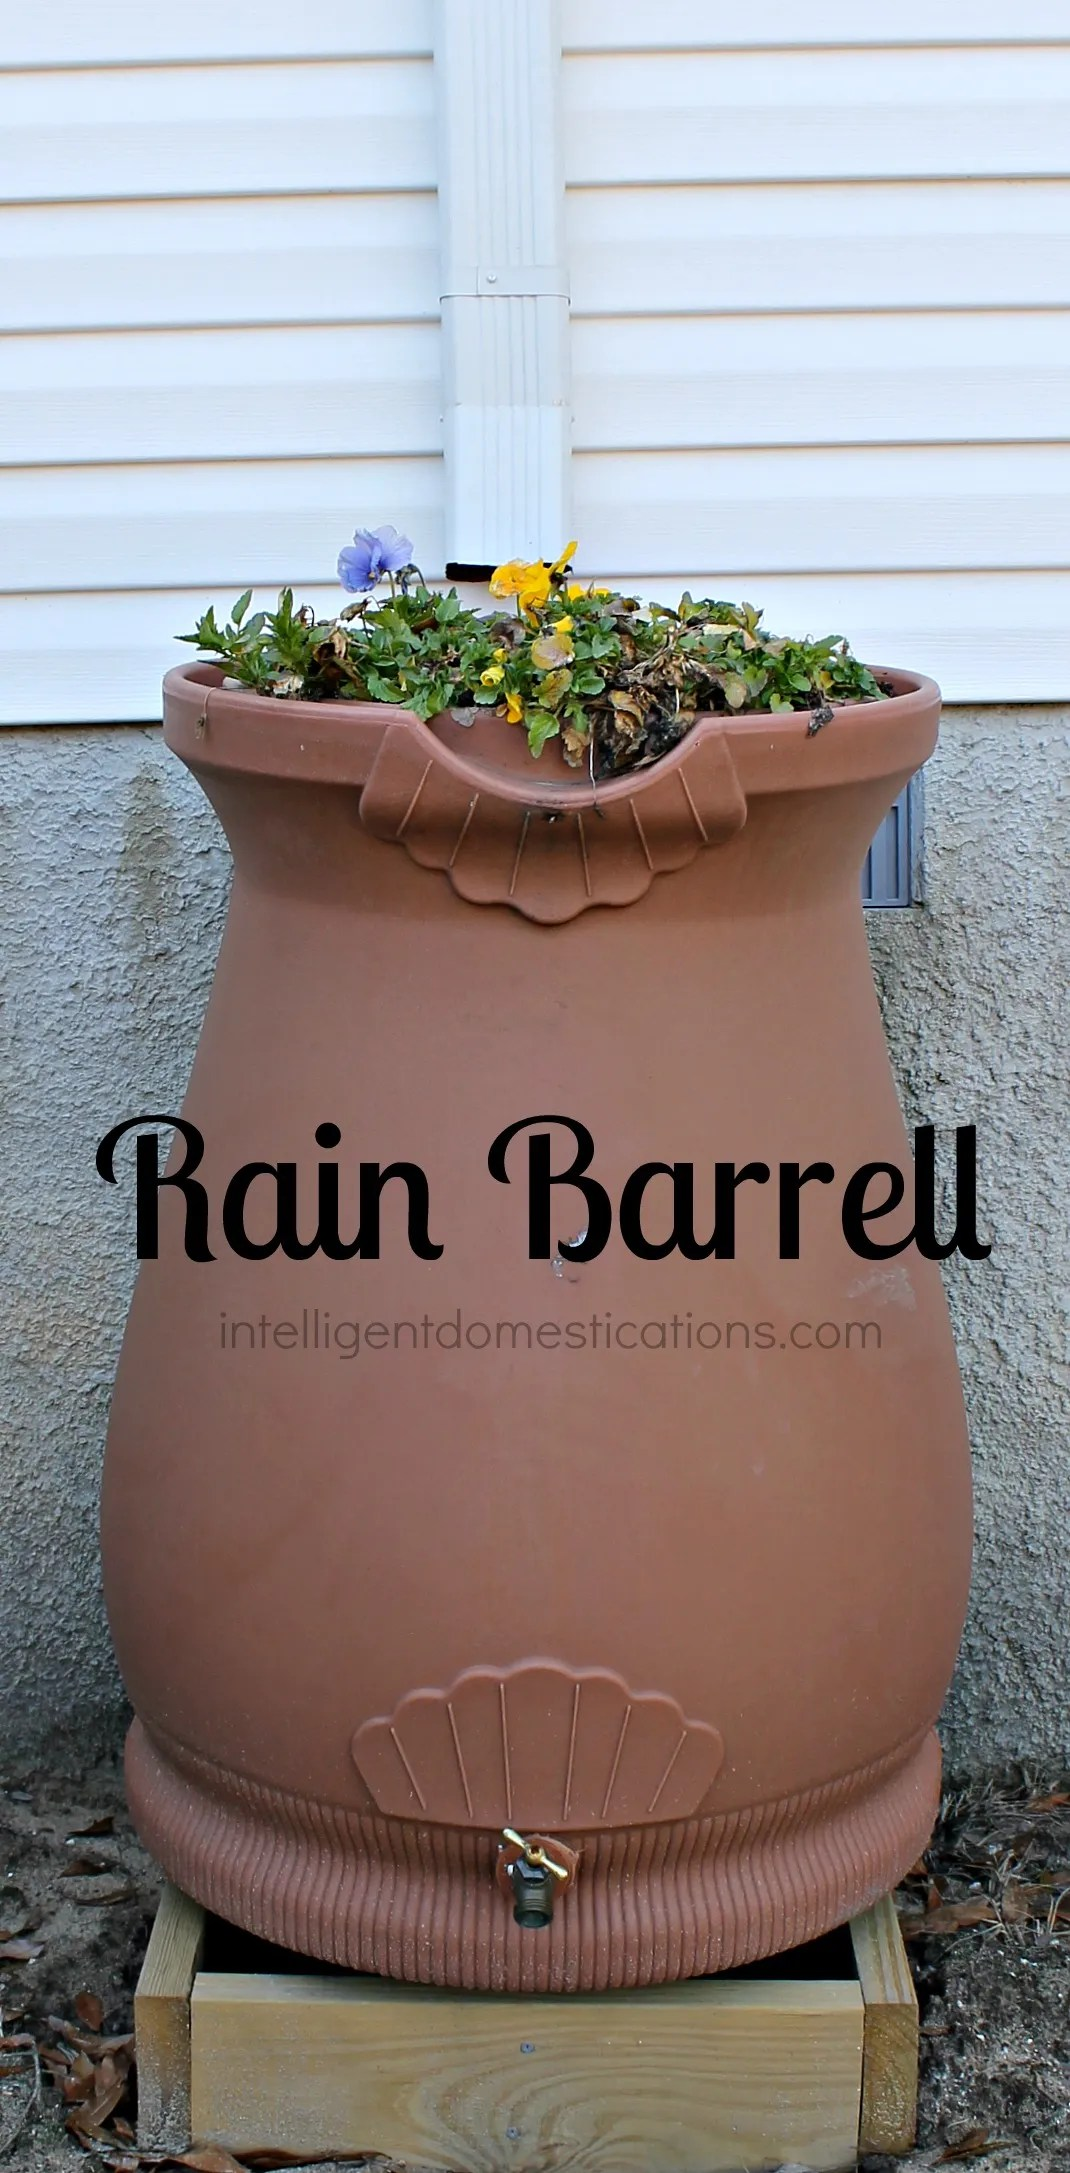 Rain Barrell installed.intelligentdomestications.com